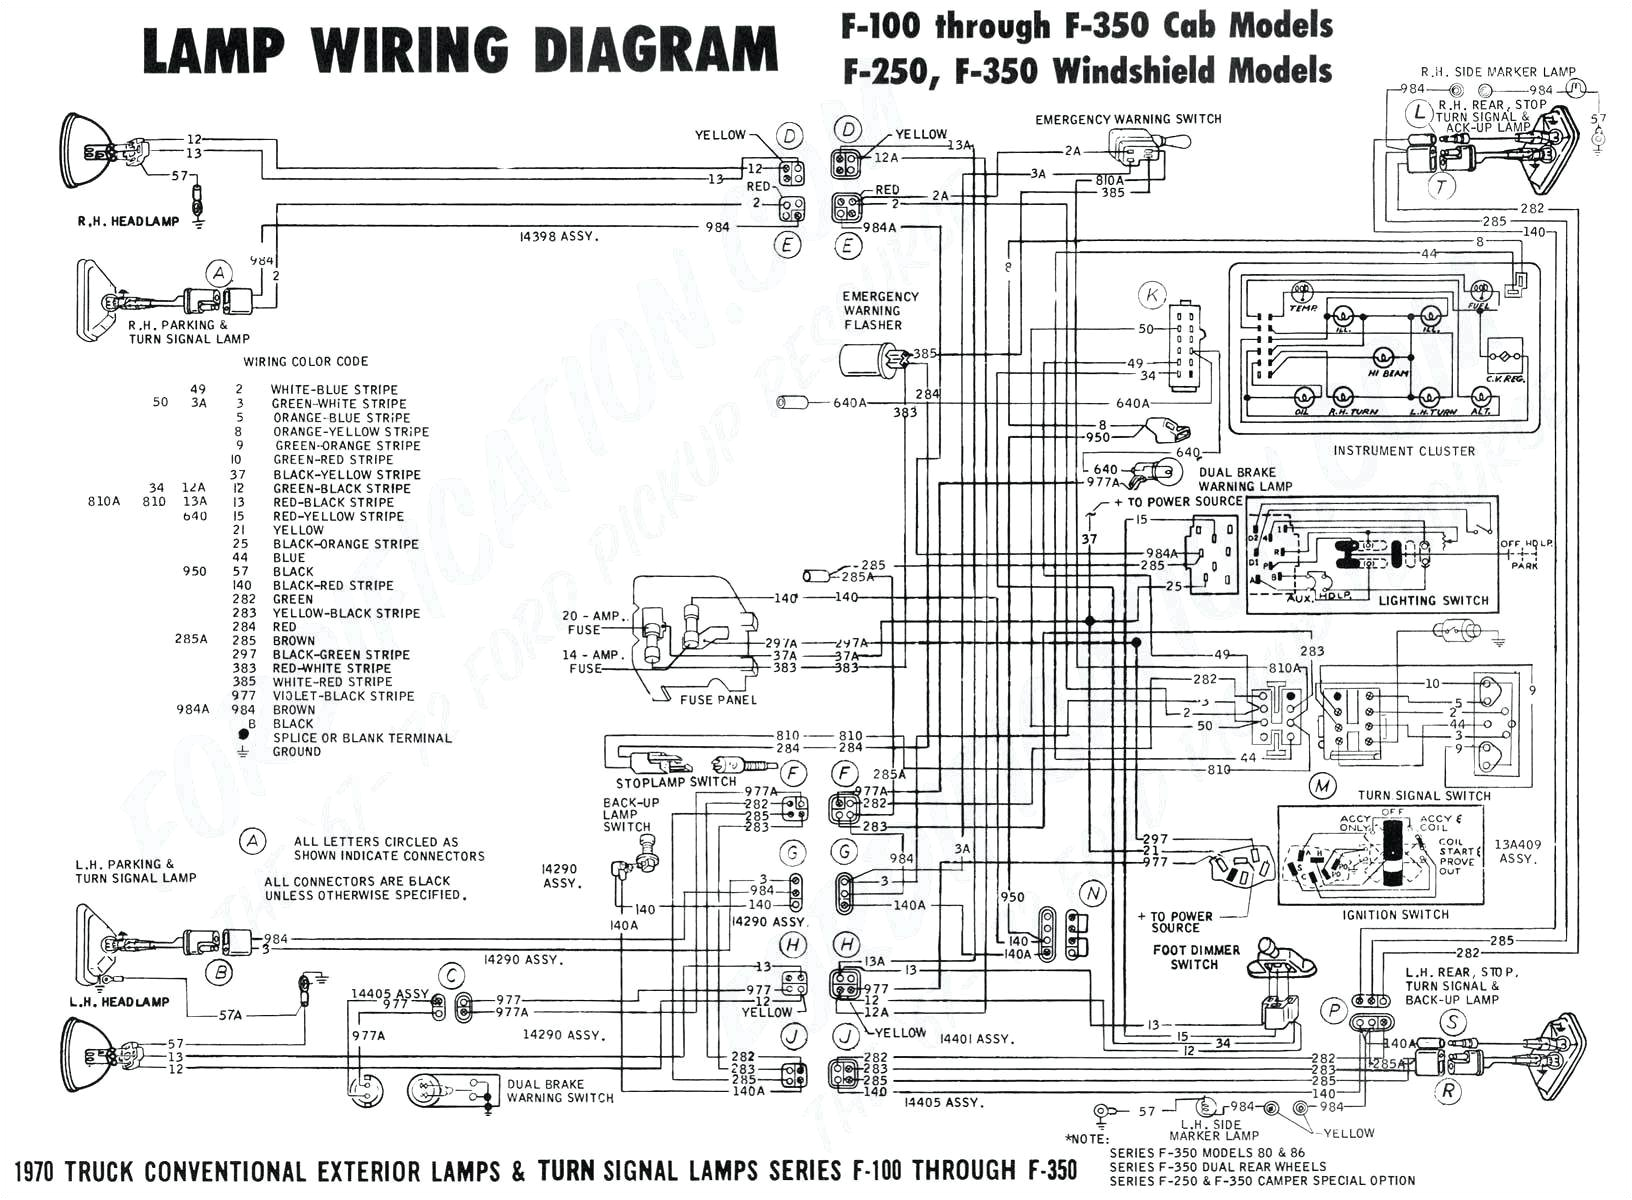 83 accord wiring diagram blog wiring diagram 83 accord wiring diagram